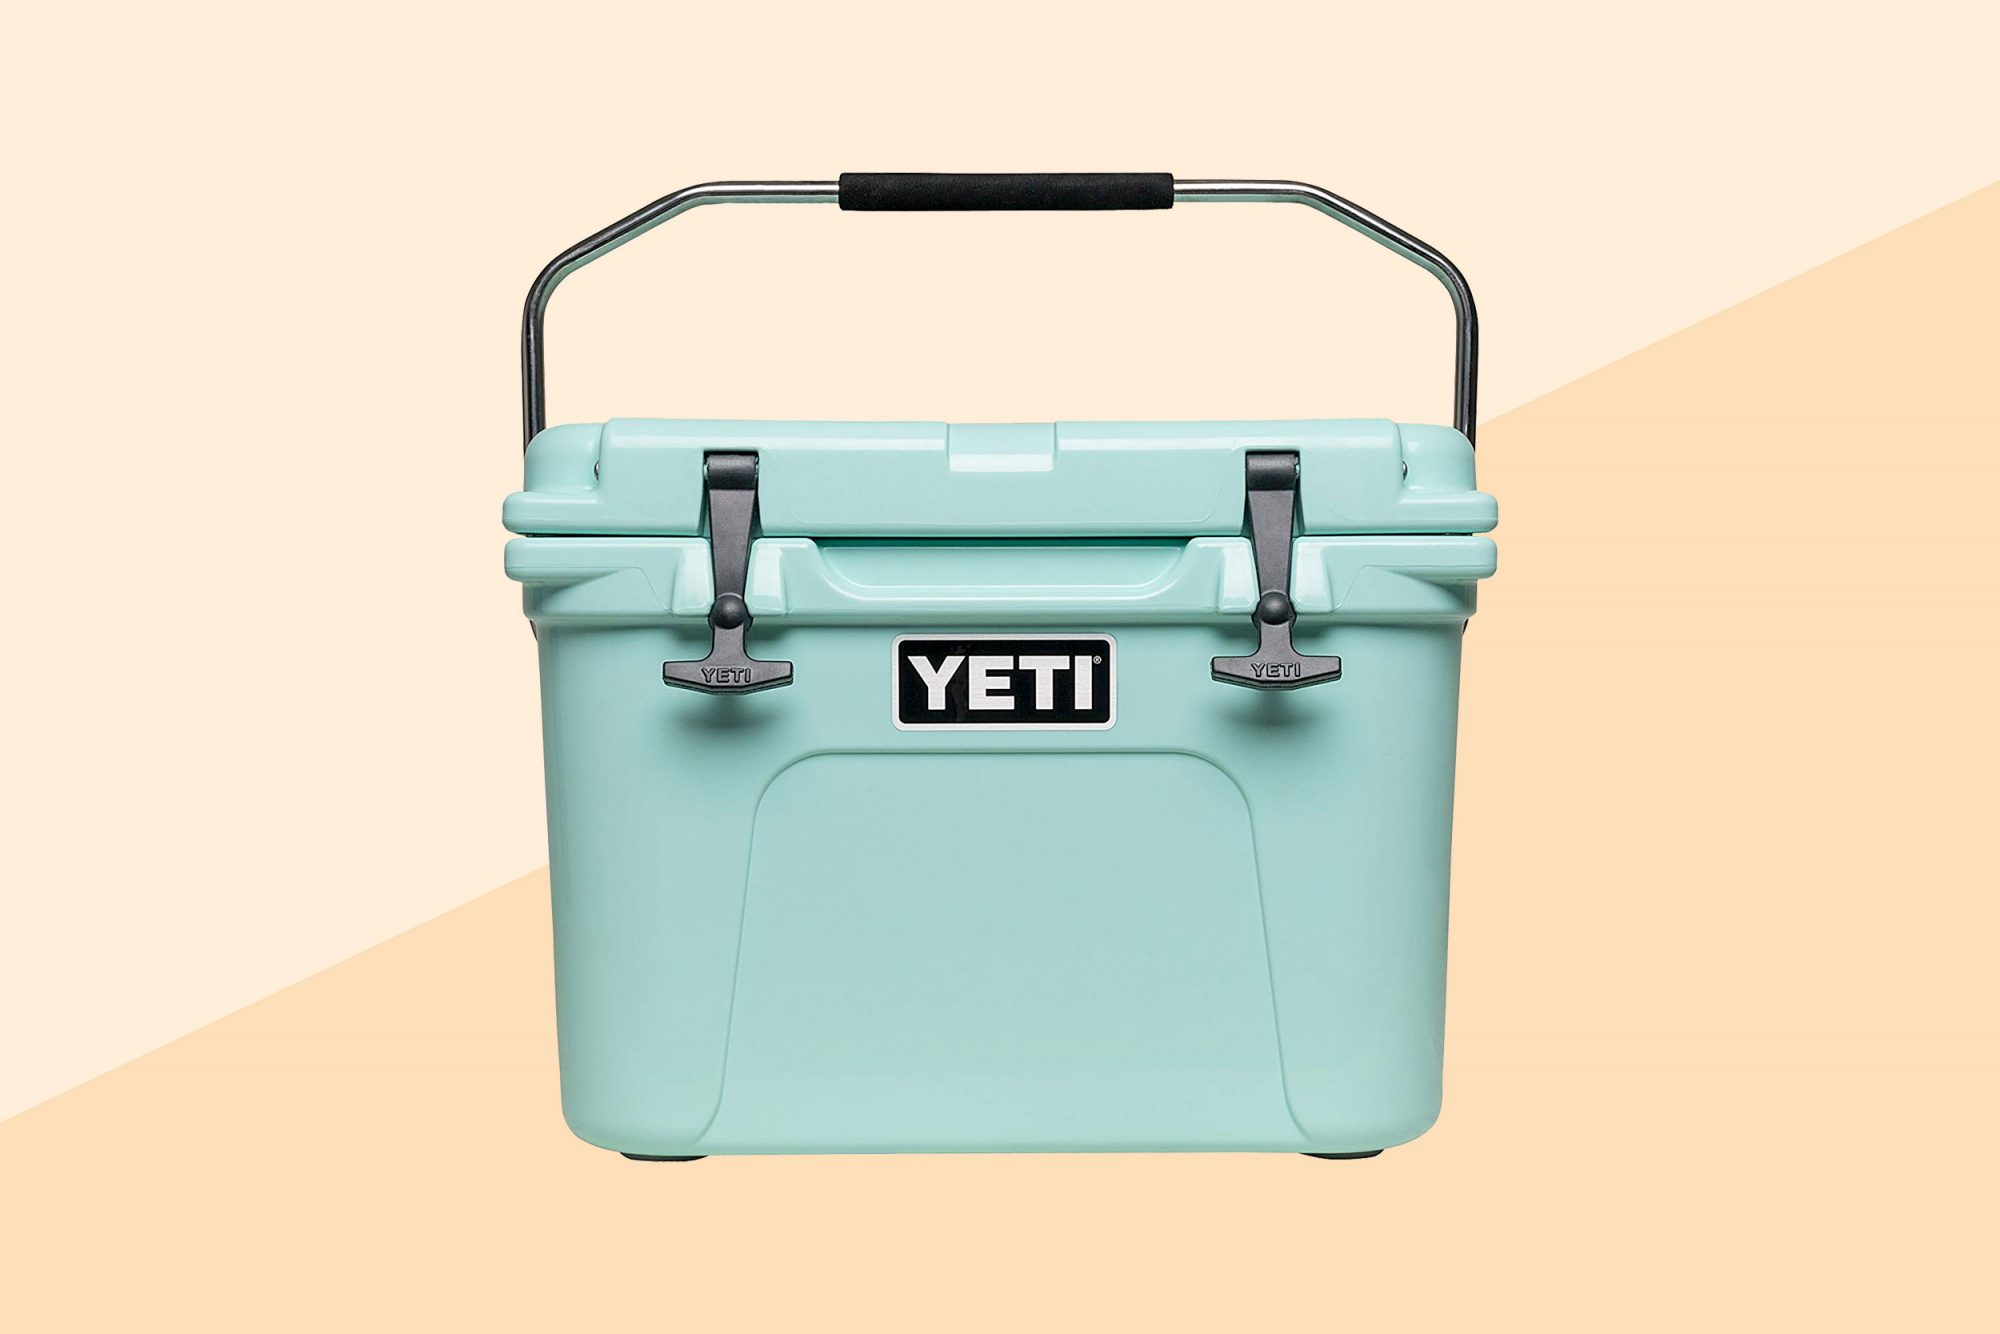 Yeti Roadie Cooler Is on Sale After Amazon Prime Day 2019 | Real Simple